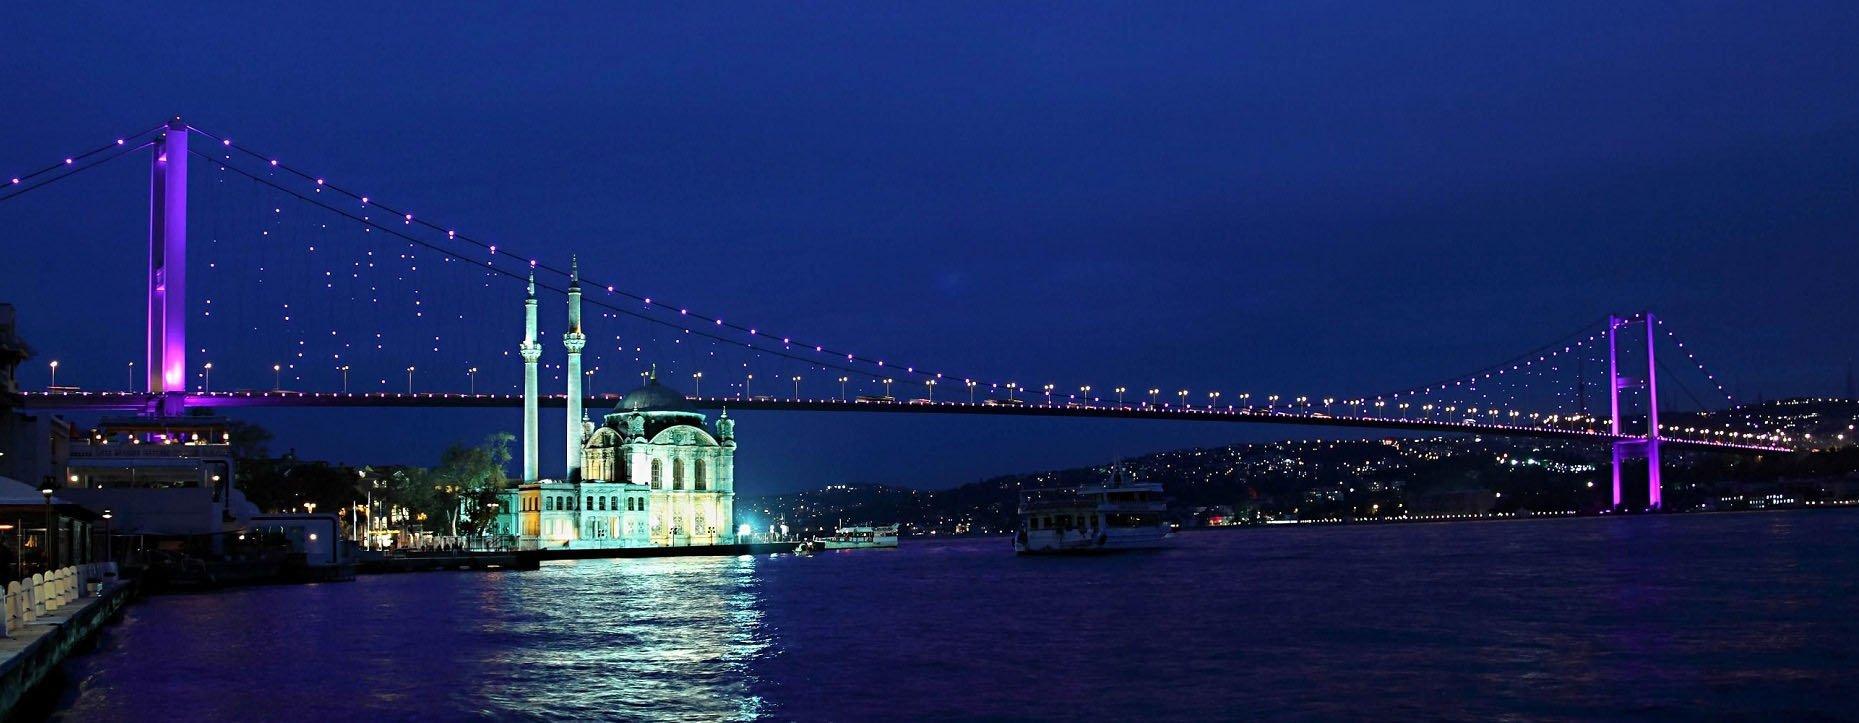 Bosphorus Bridge View